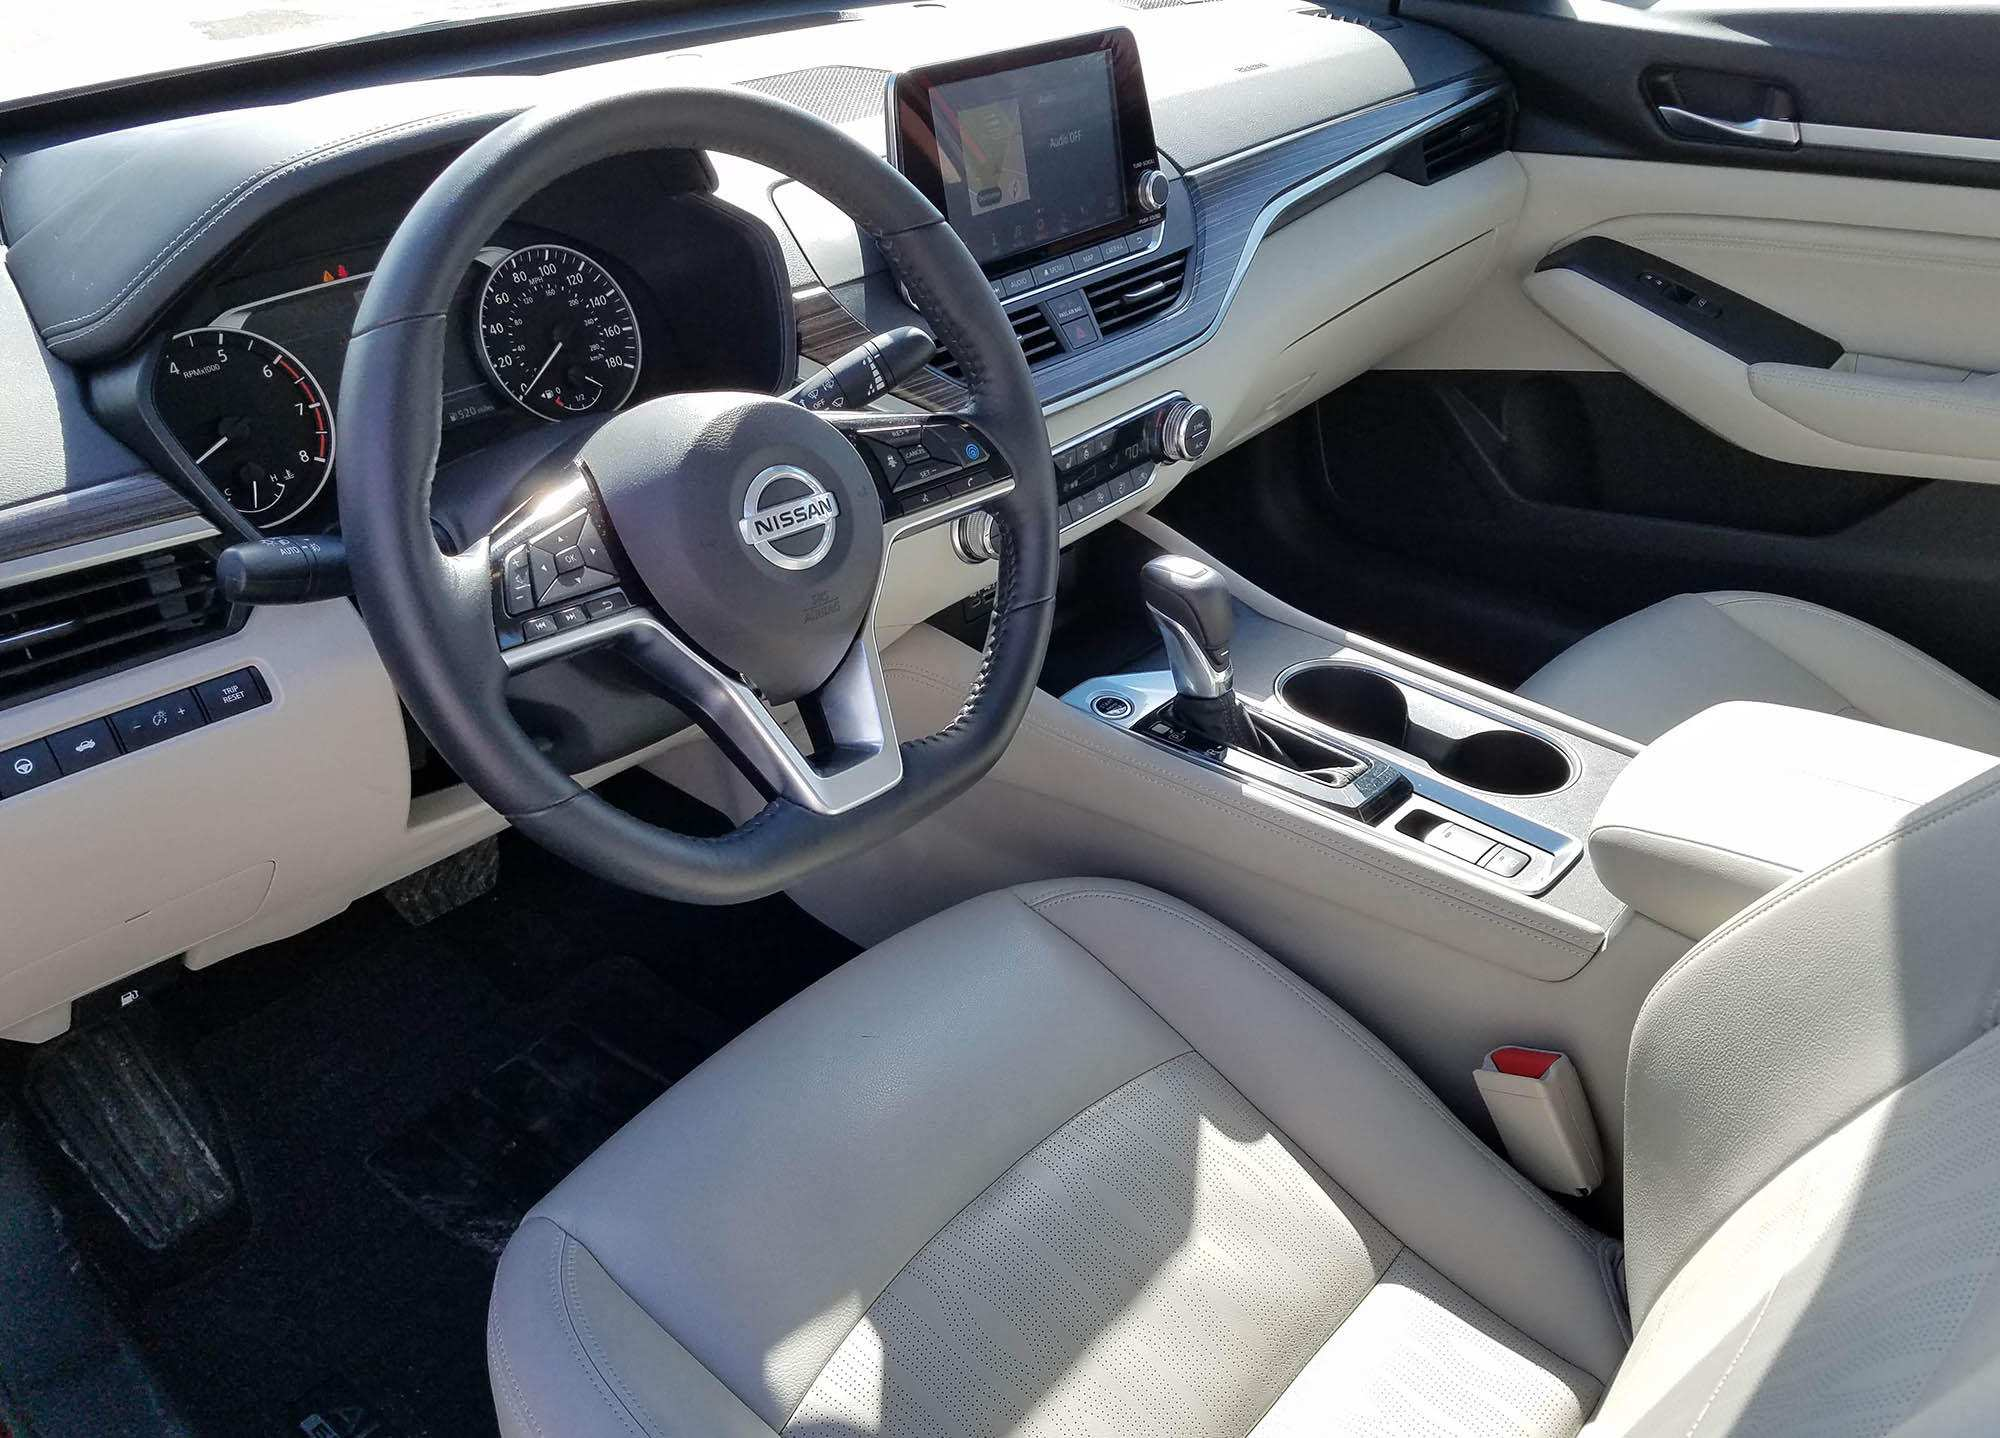 46 The Best Nissan Altima Interior Release Date